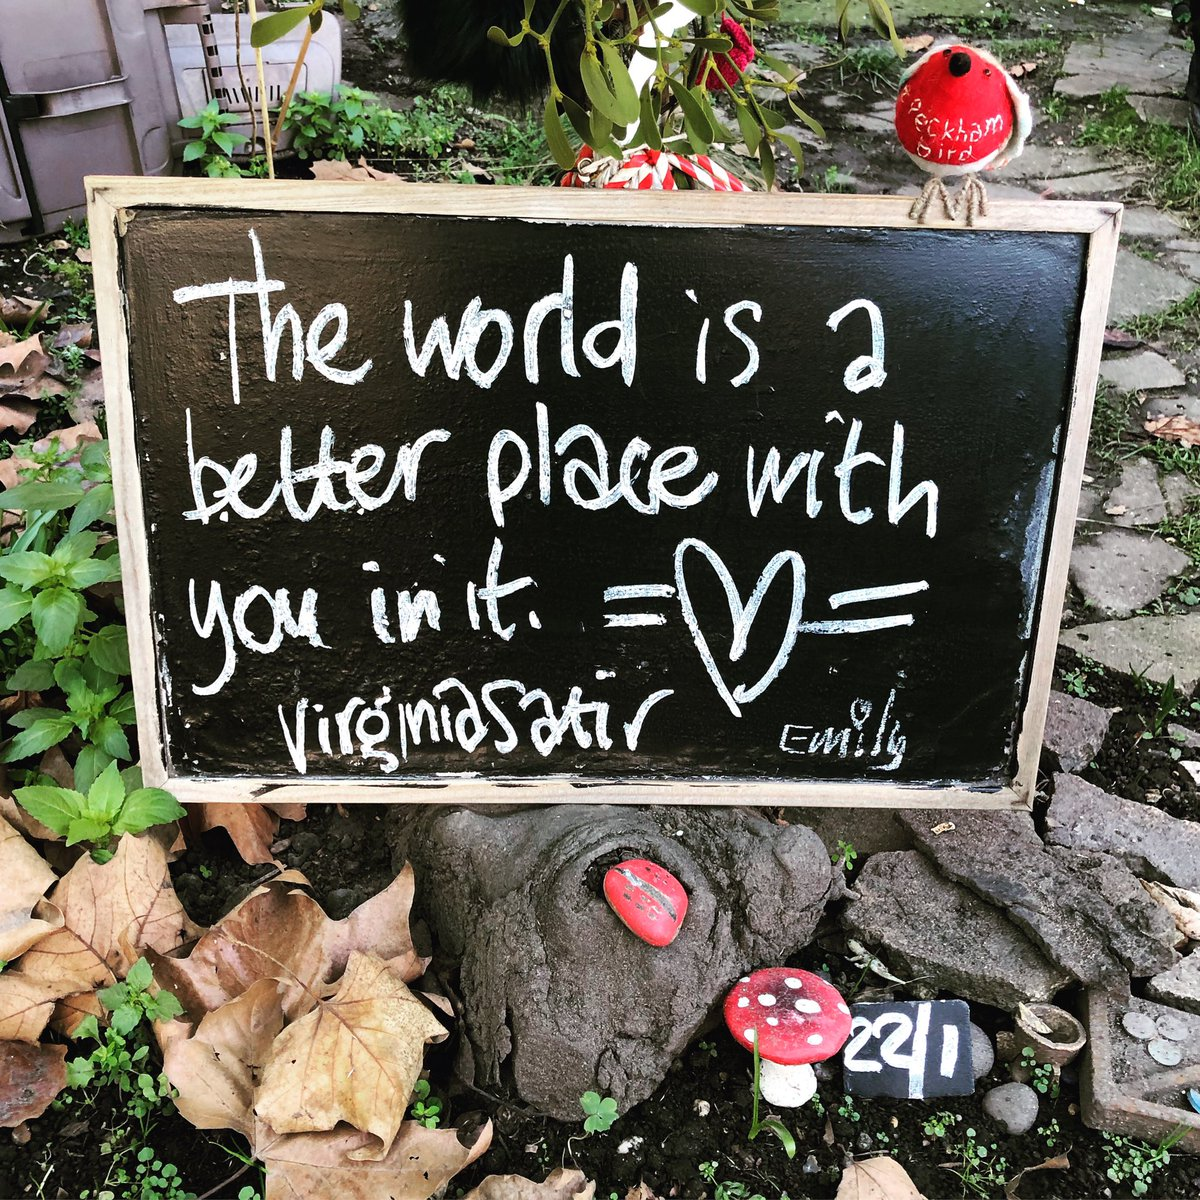 #theworldisabetterplace  #world #betterwithyou #beyou #authenticity #staykind #beyoutiful #kindness #wishing  #everyone #light #love #laughter and #joy in your dear #hearts 🌈❤️